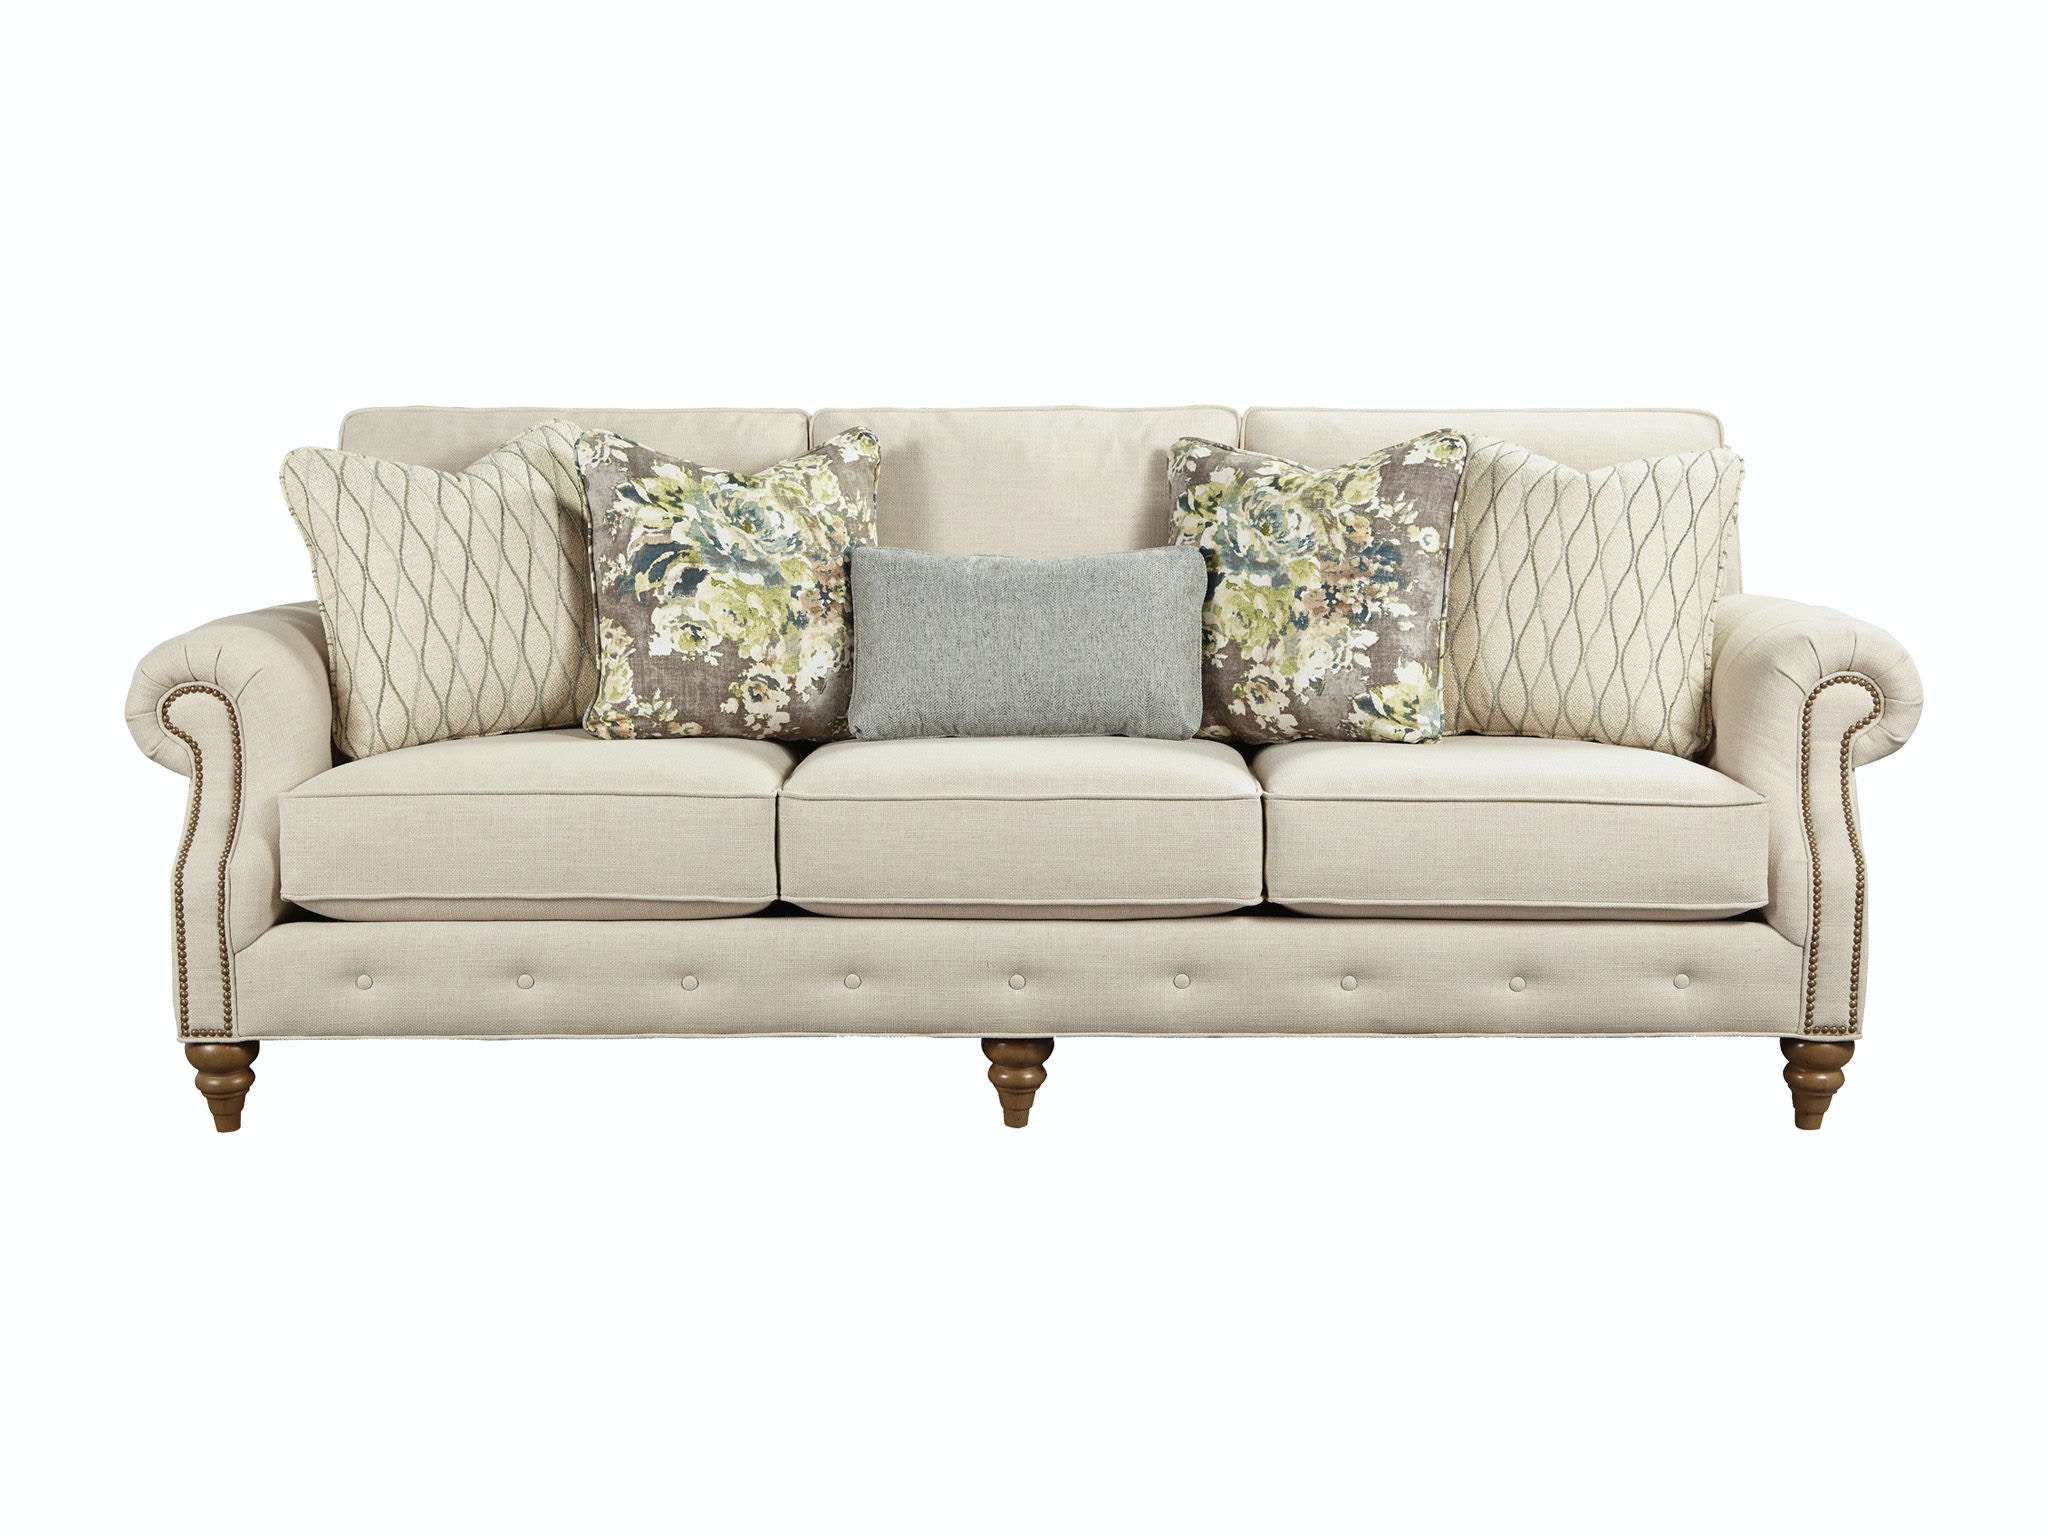 Paula Deen By Craftmaster Furniture Gibson Furniture Andrews Nc